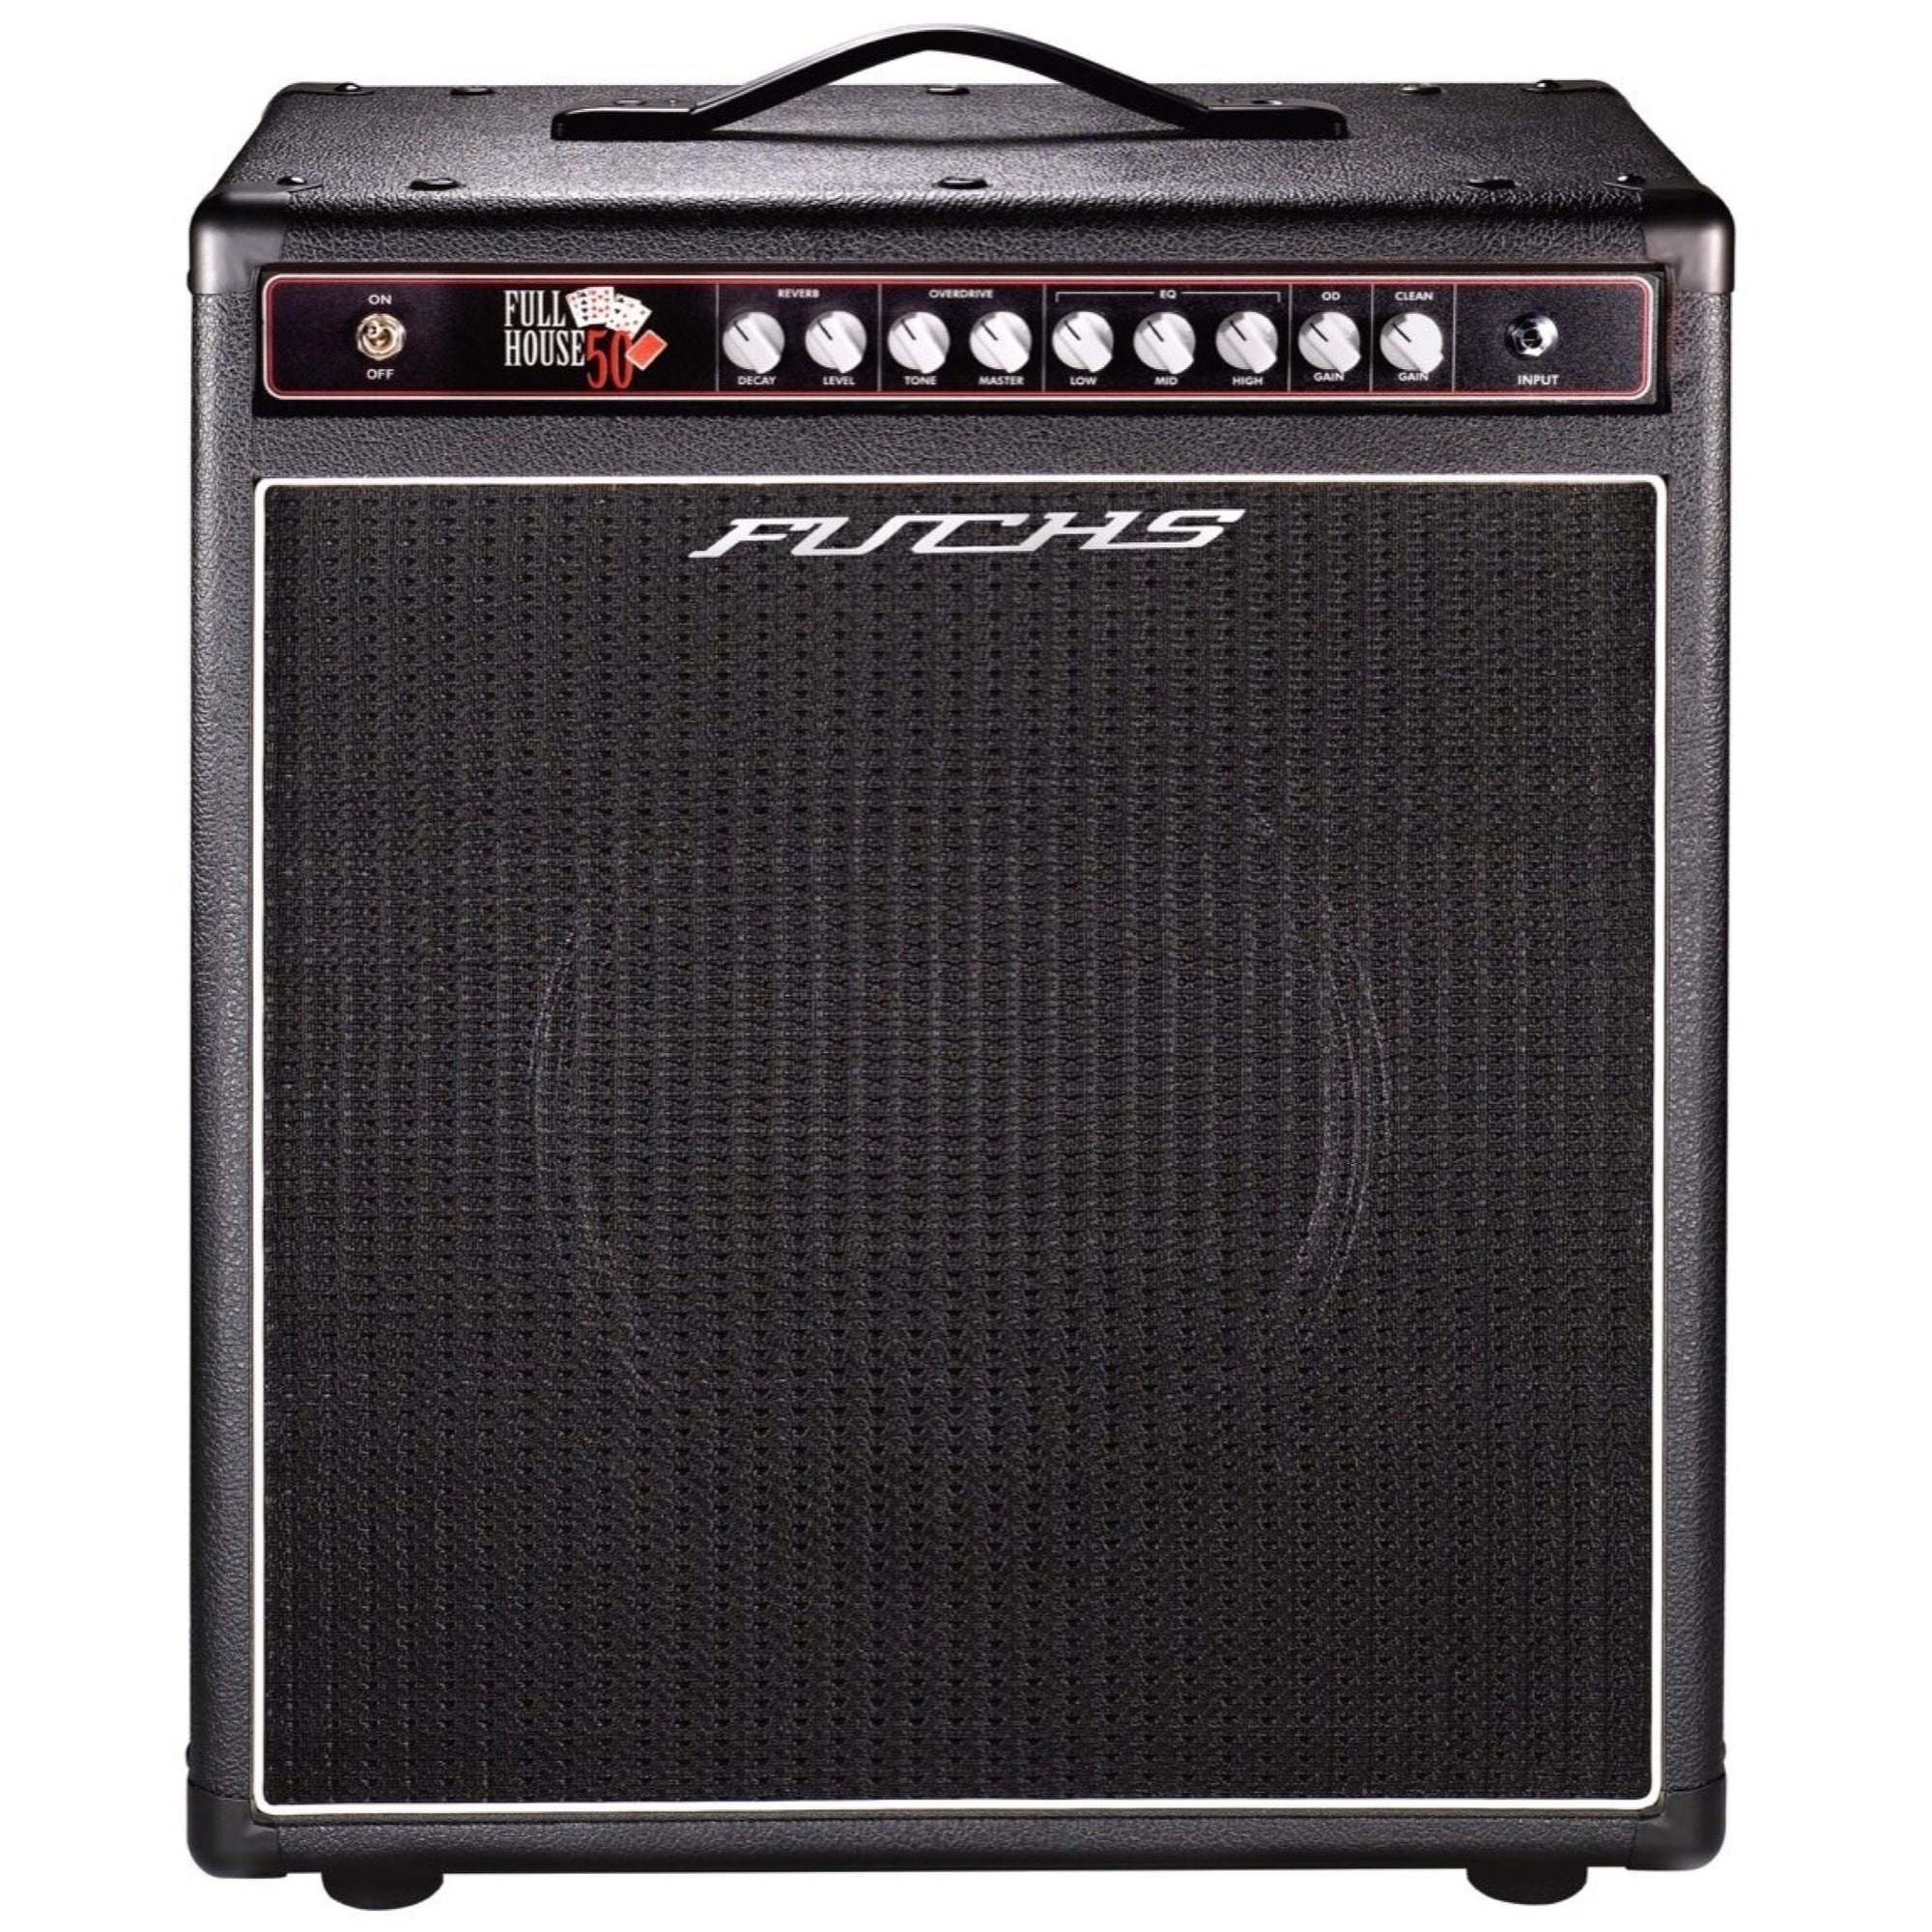 Fuchs Full House 50 Guitar Combo Amplifier (50 Watts, 1x12 Inch)